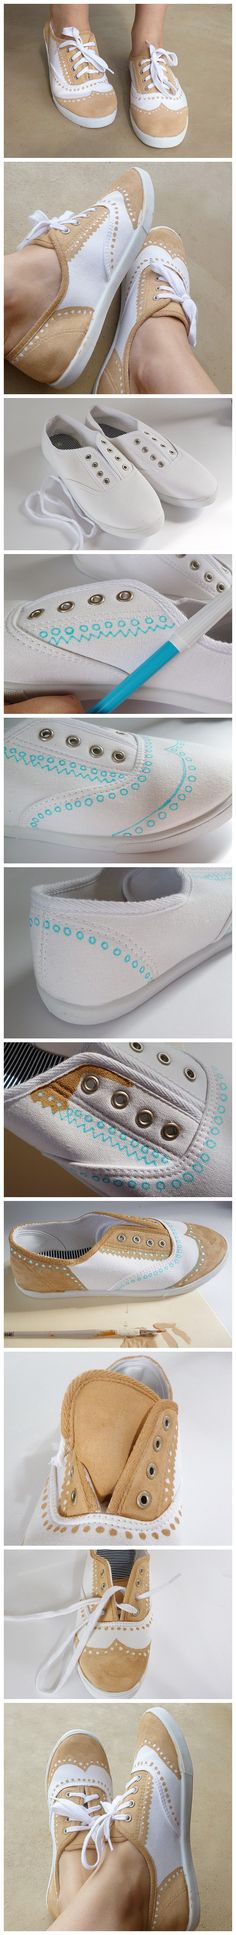 DIY saddle shoes - so cool!